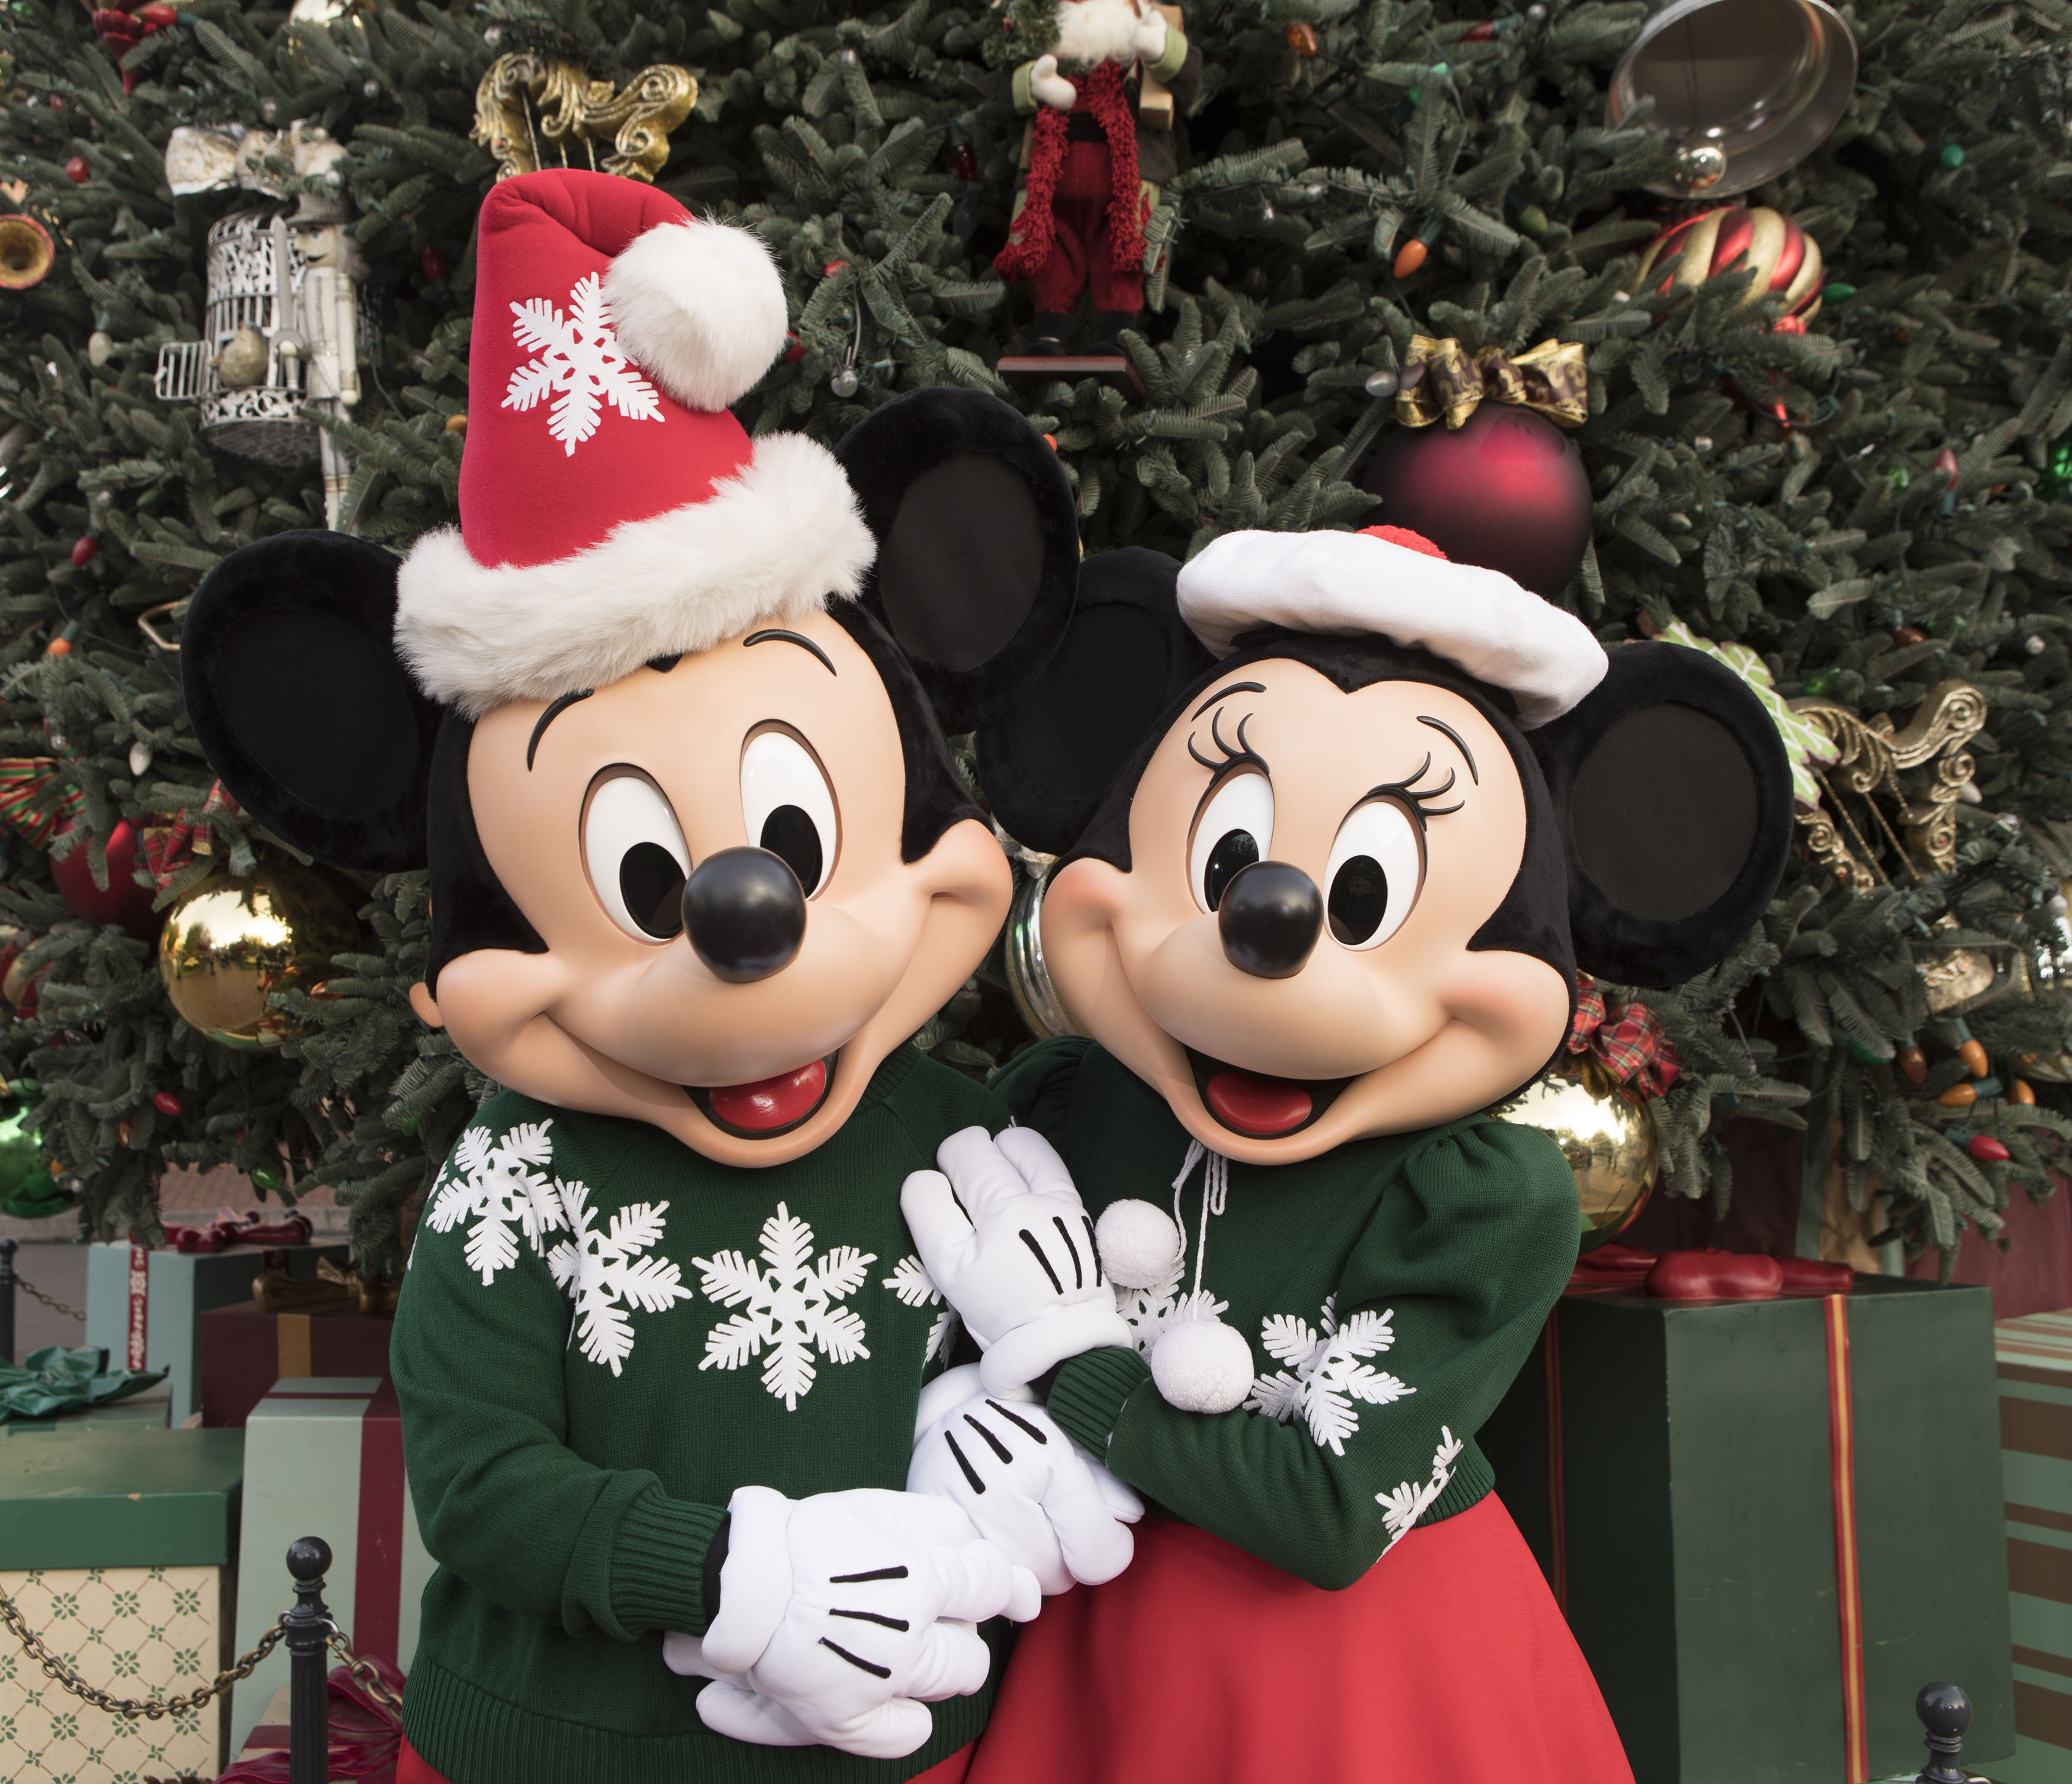 Christmas Minnie Mouse Disneyland.Christmas At California Theme Parks 2019 Holiday Celebrations